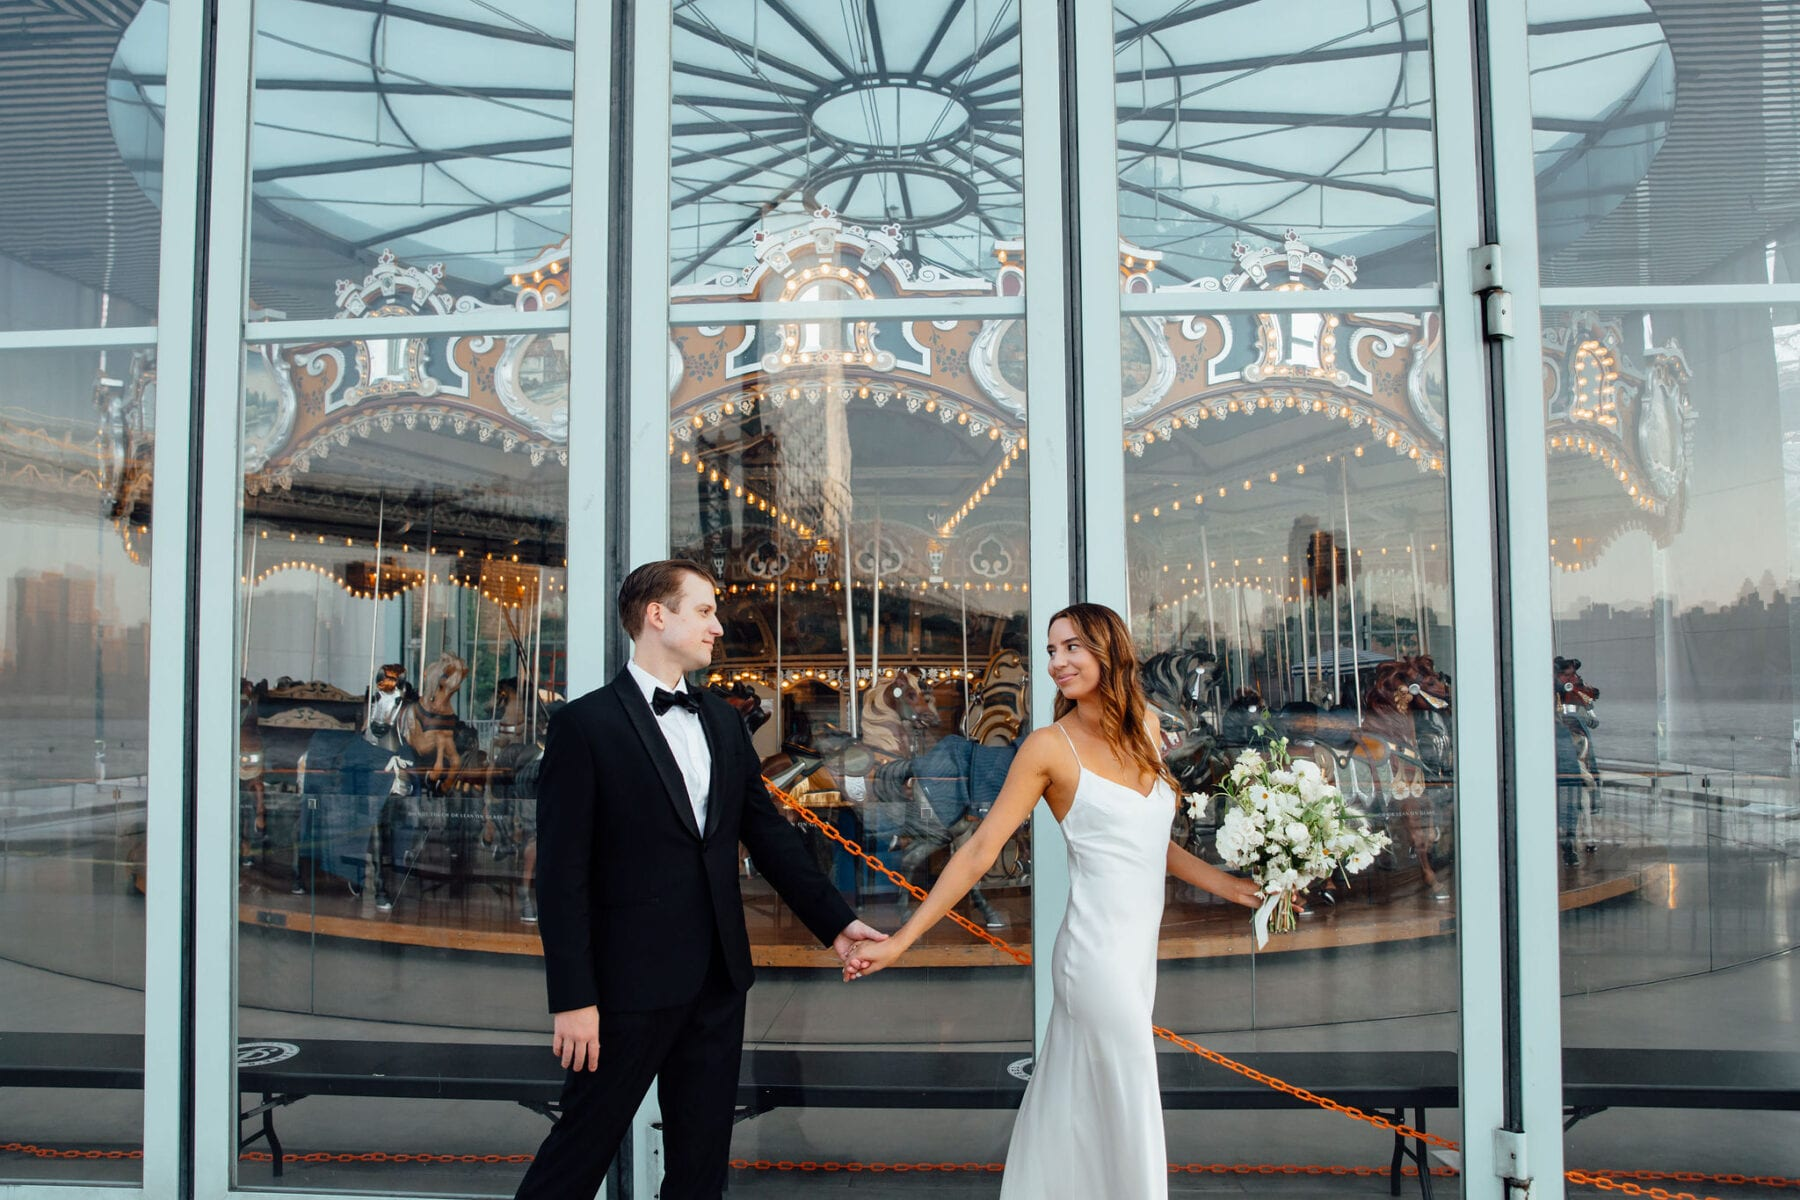 Bride and groom at Jane Carousel